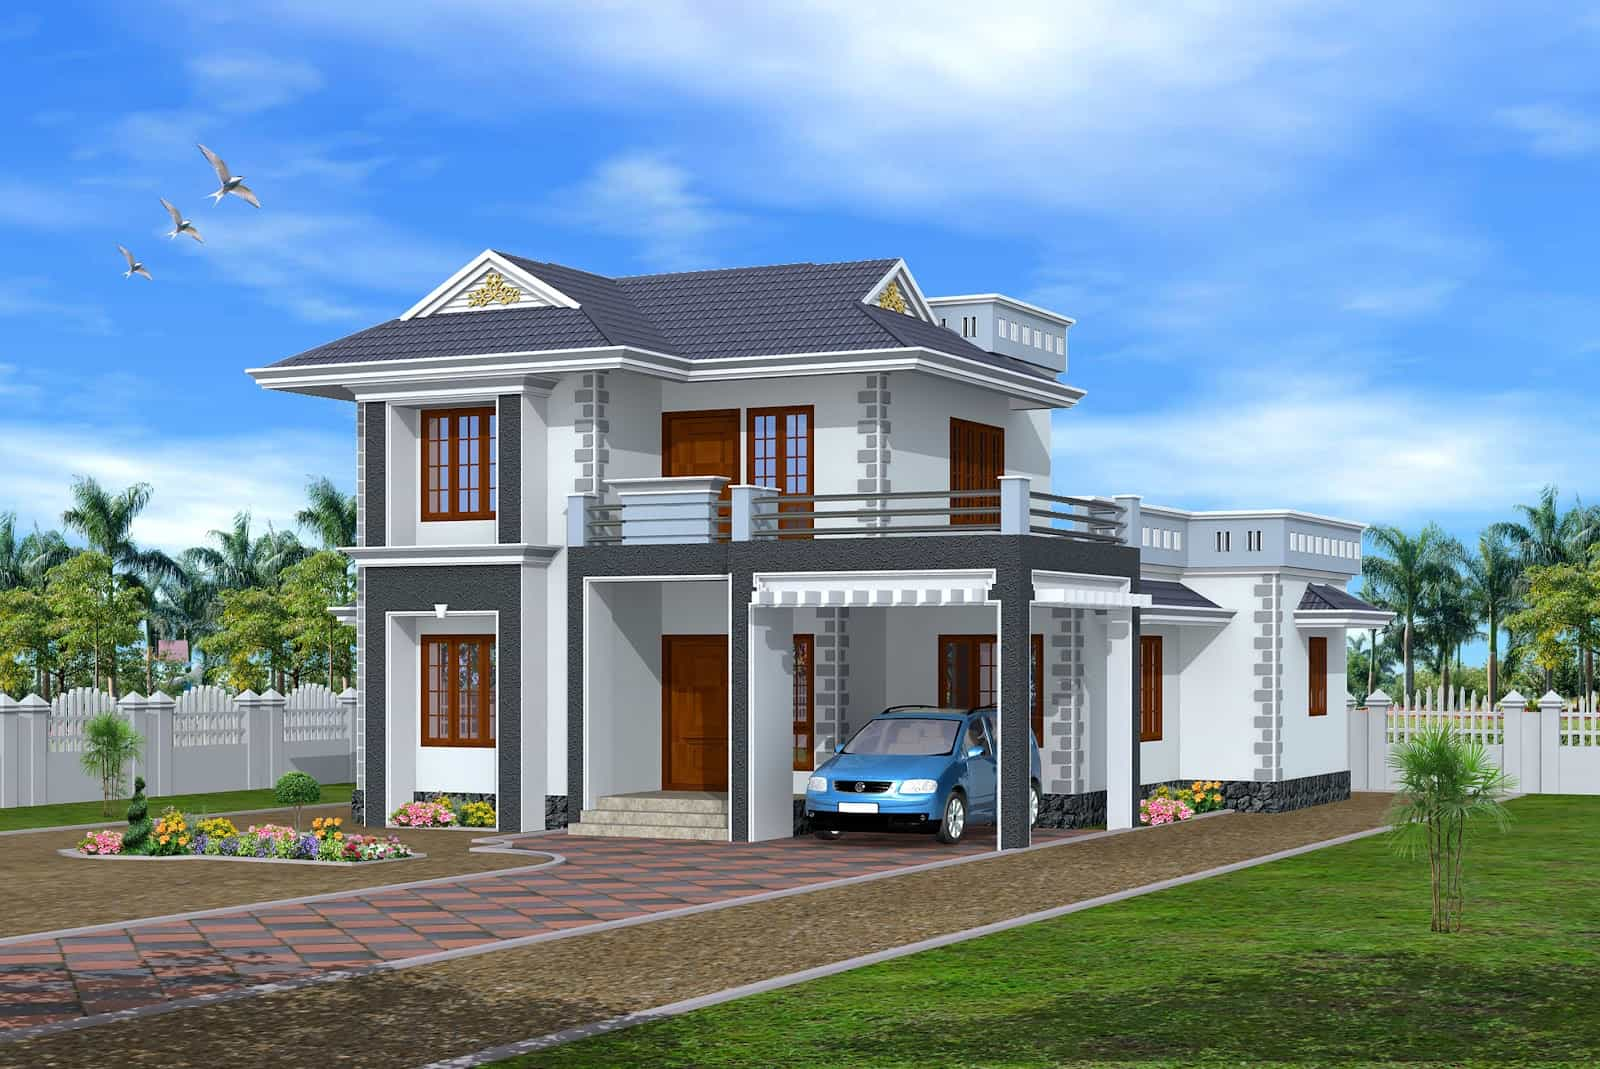 3 bedroom 3d exterior house design at 1845 sqft